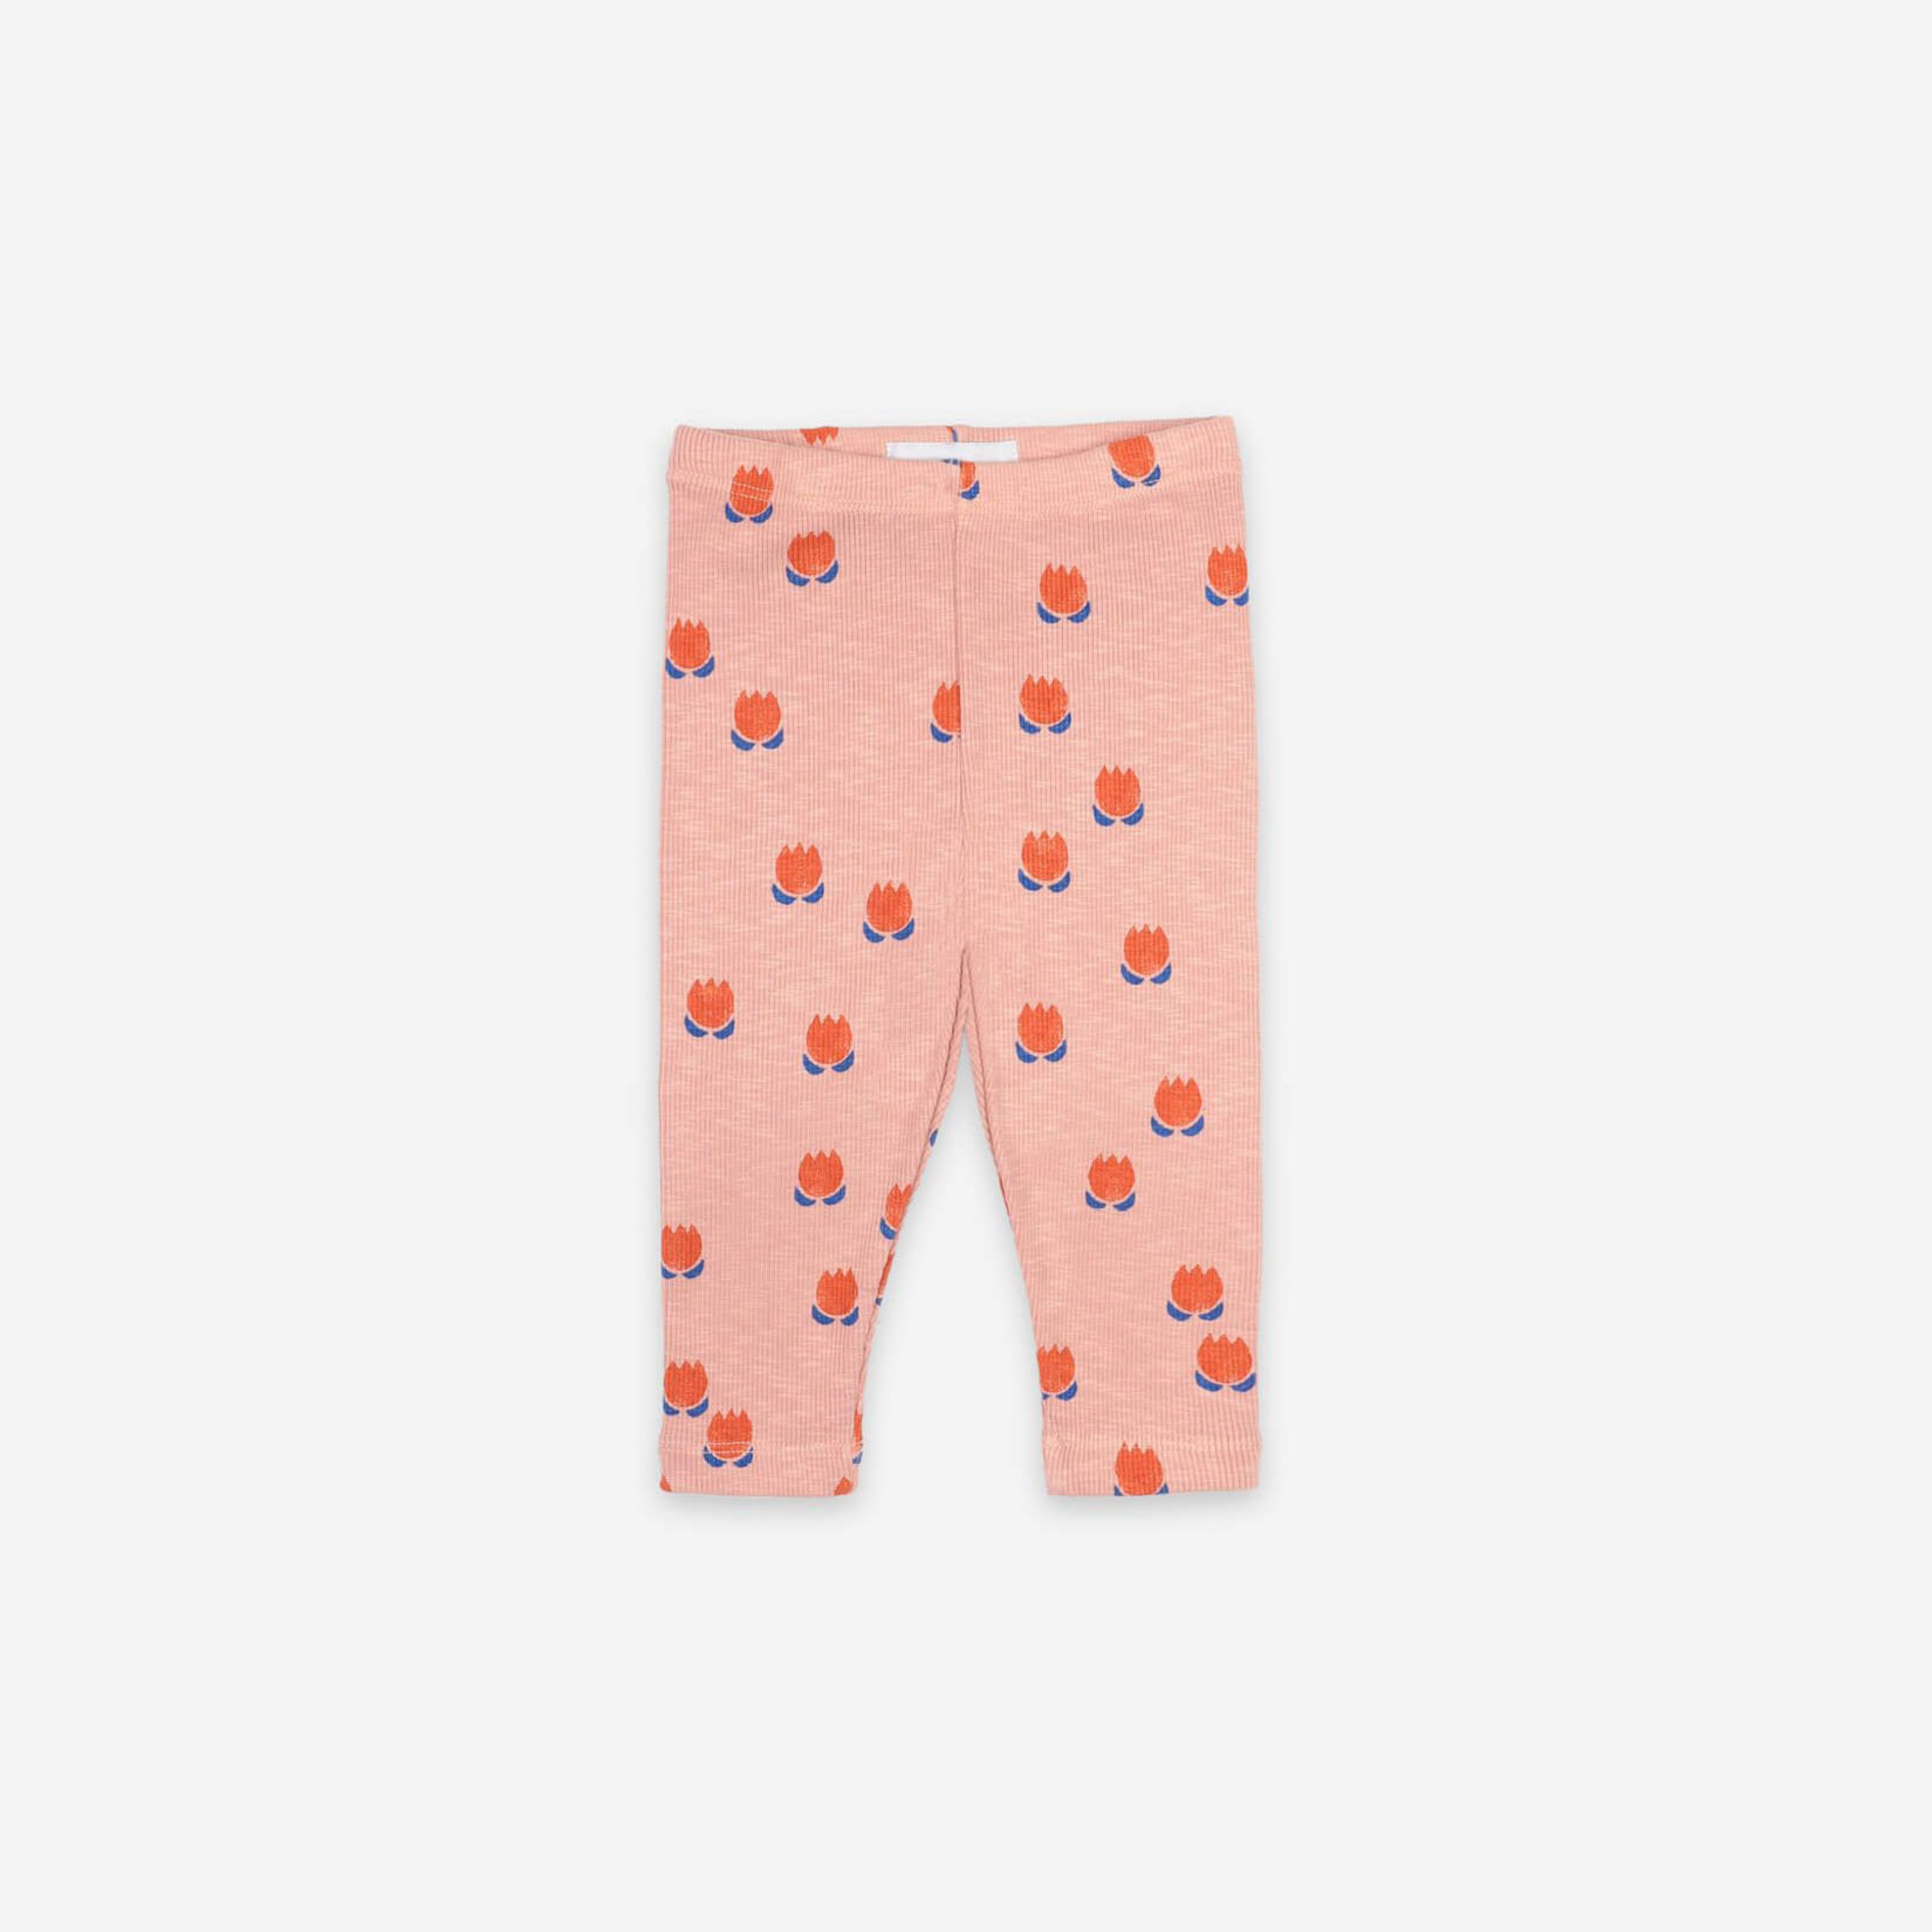 Bobo Choses - Chocolate Flowers All Over Leggings